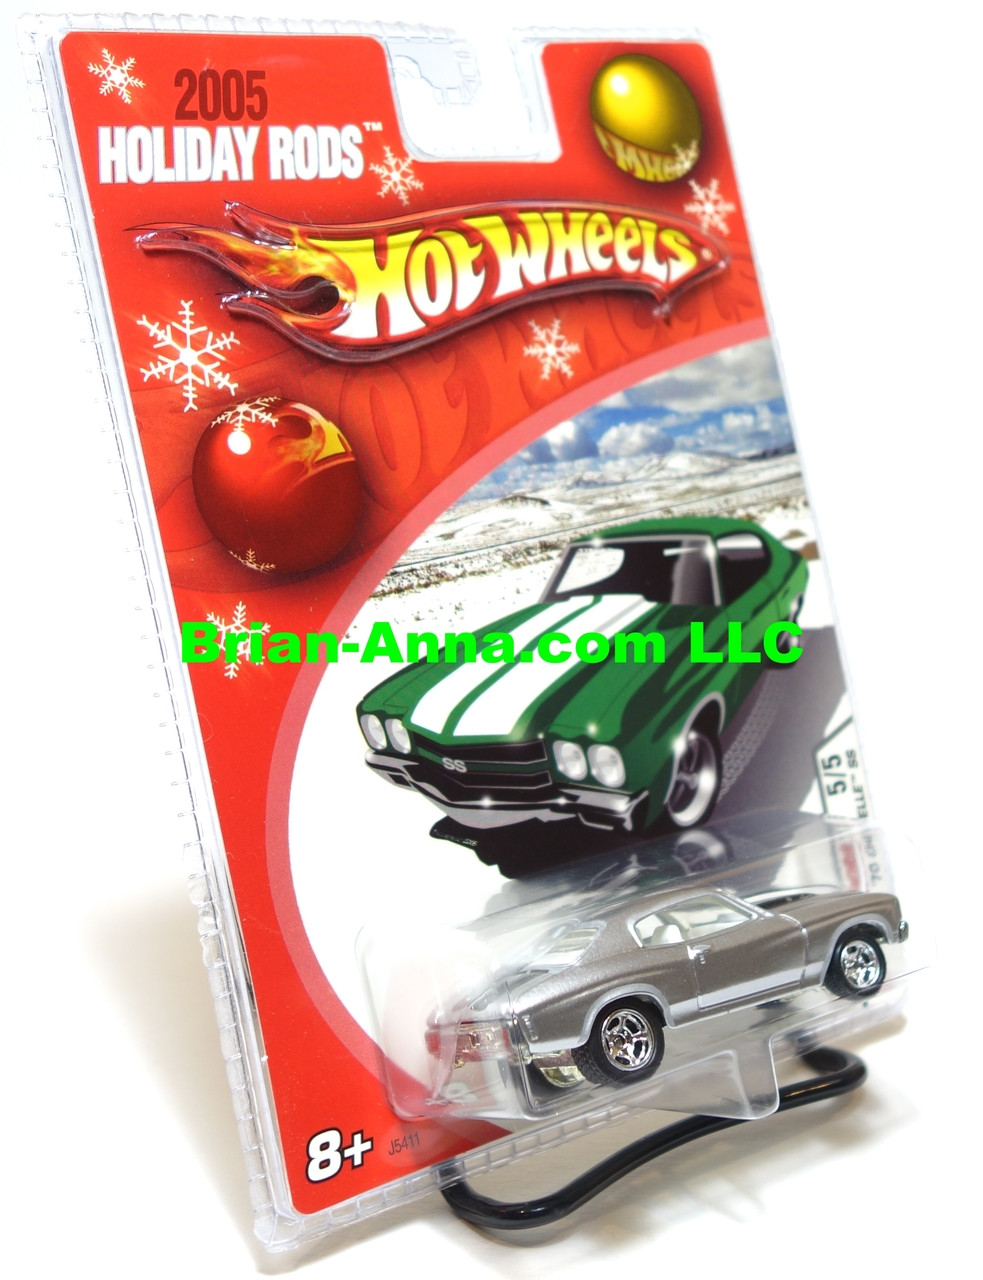 Hot Wheels 2005 Holiday Rods 1970 Chevelle Ss In Satin Red Hotwheels 12 Camaro Zl1 Green Silver